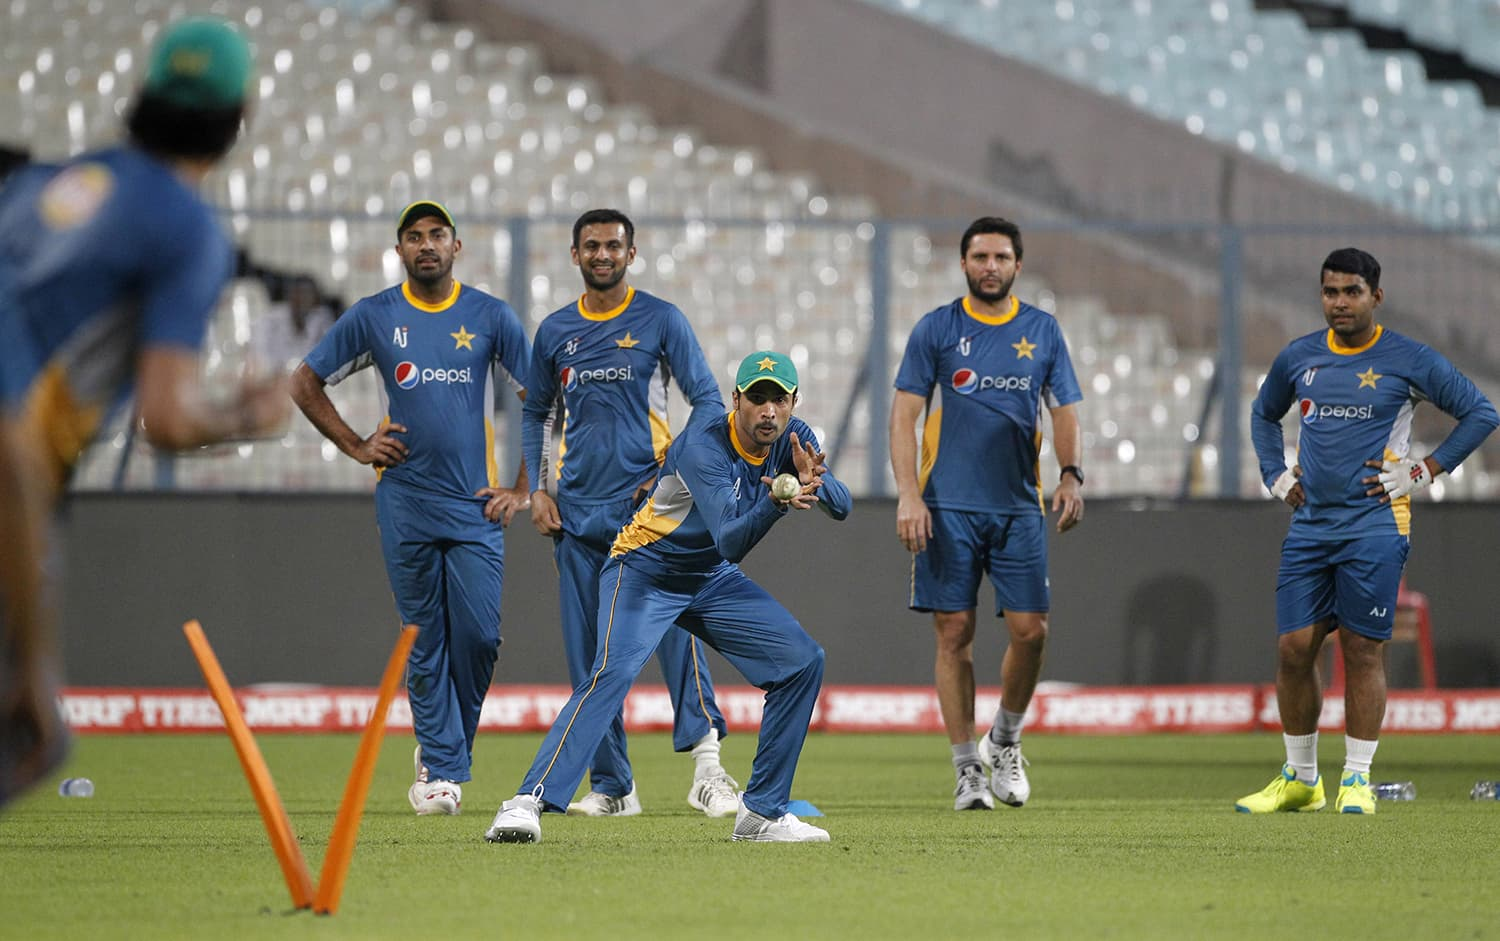 Watched by team mates, Amir practices taking catches during a training session in Kolkata. — AP